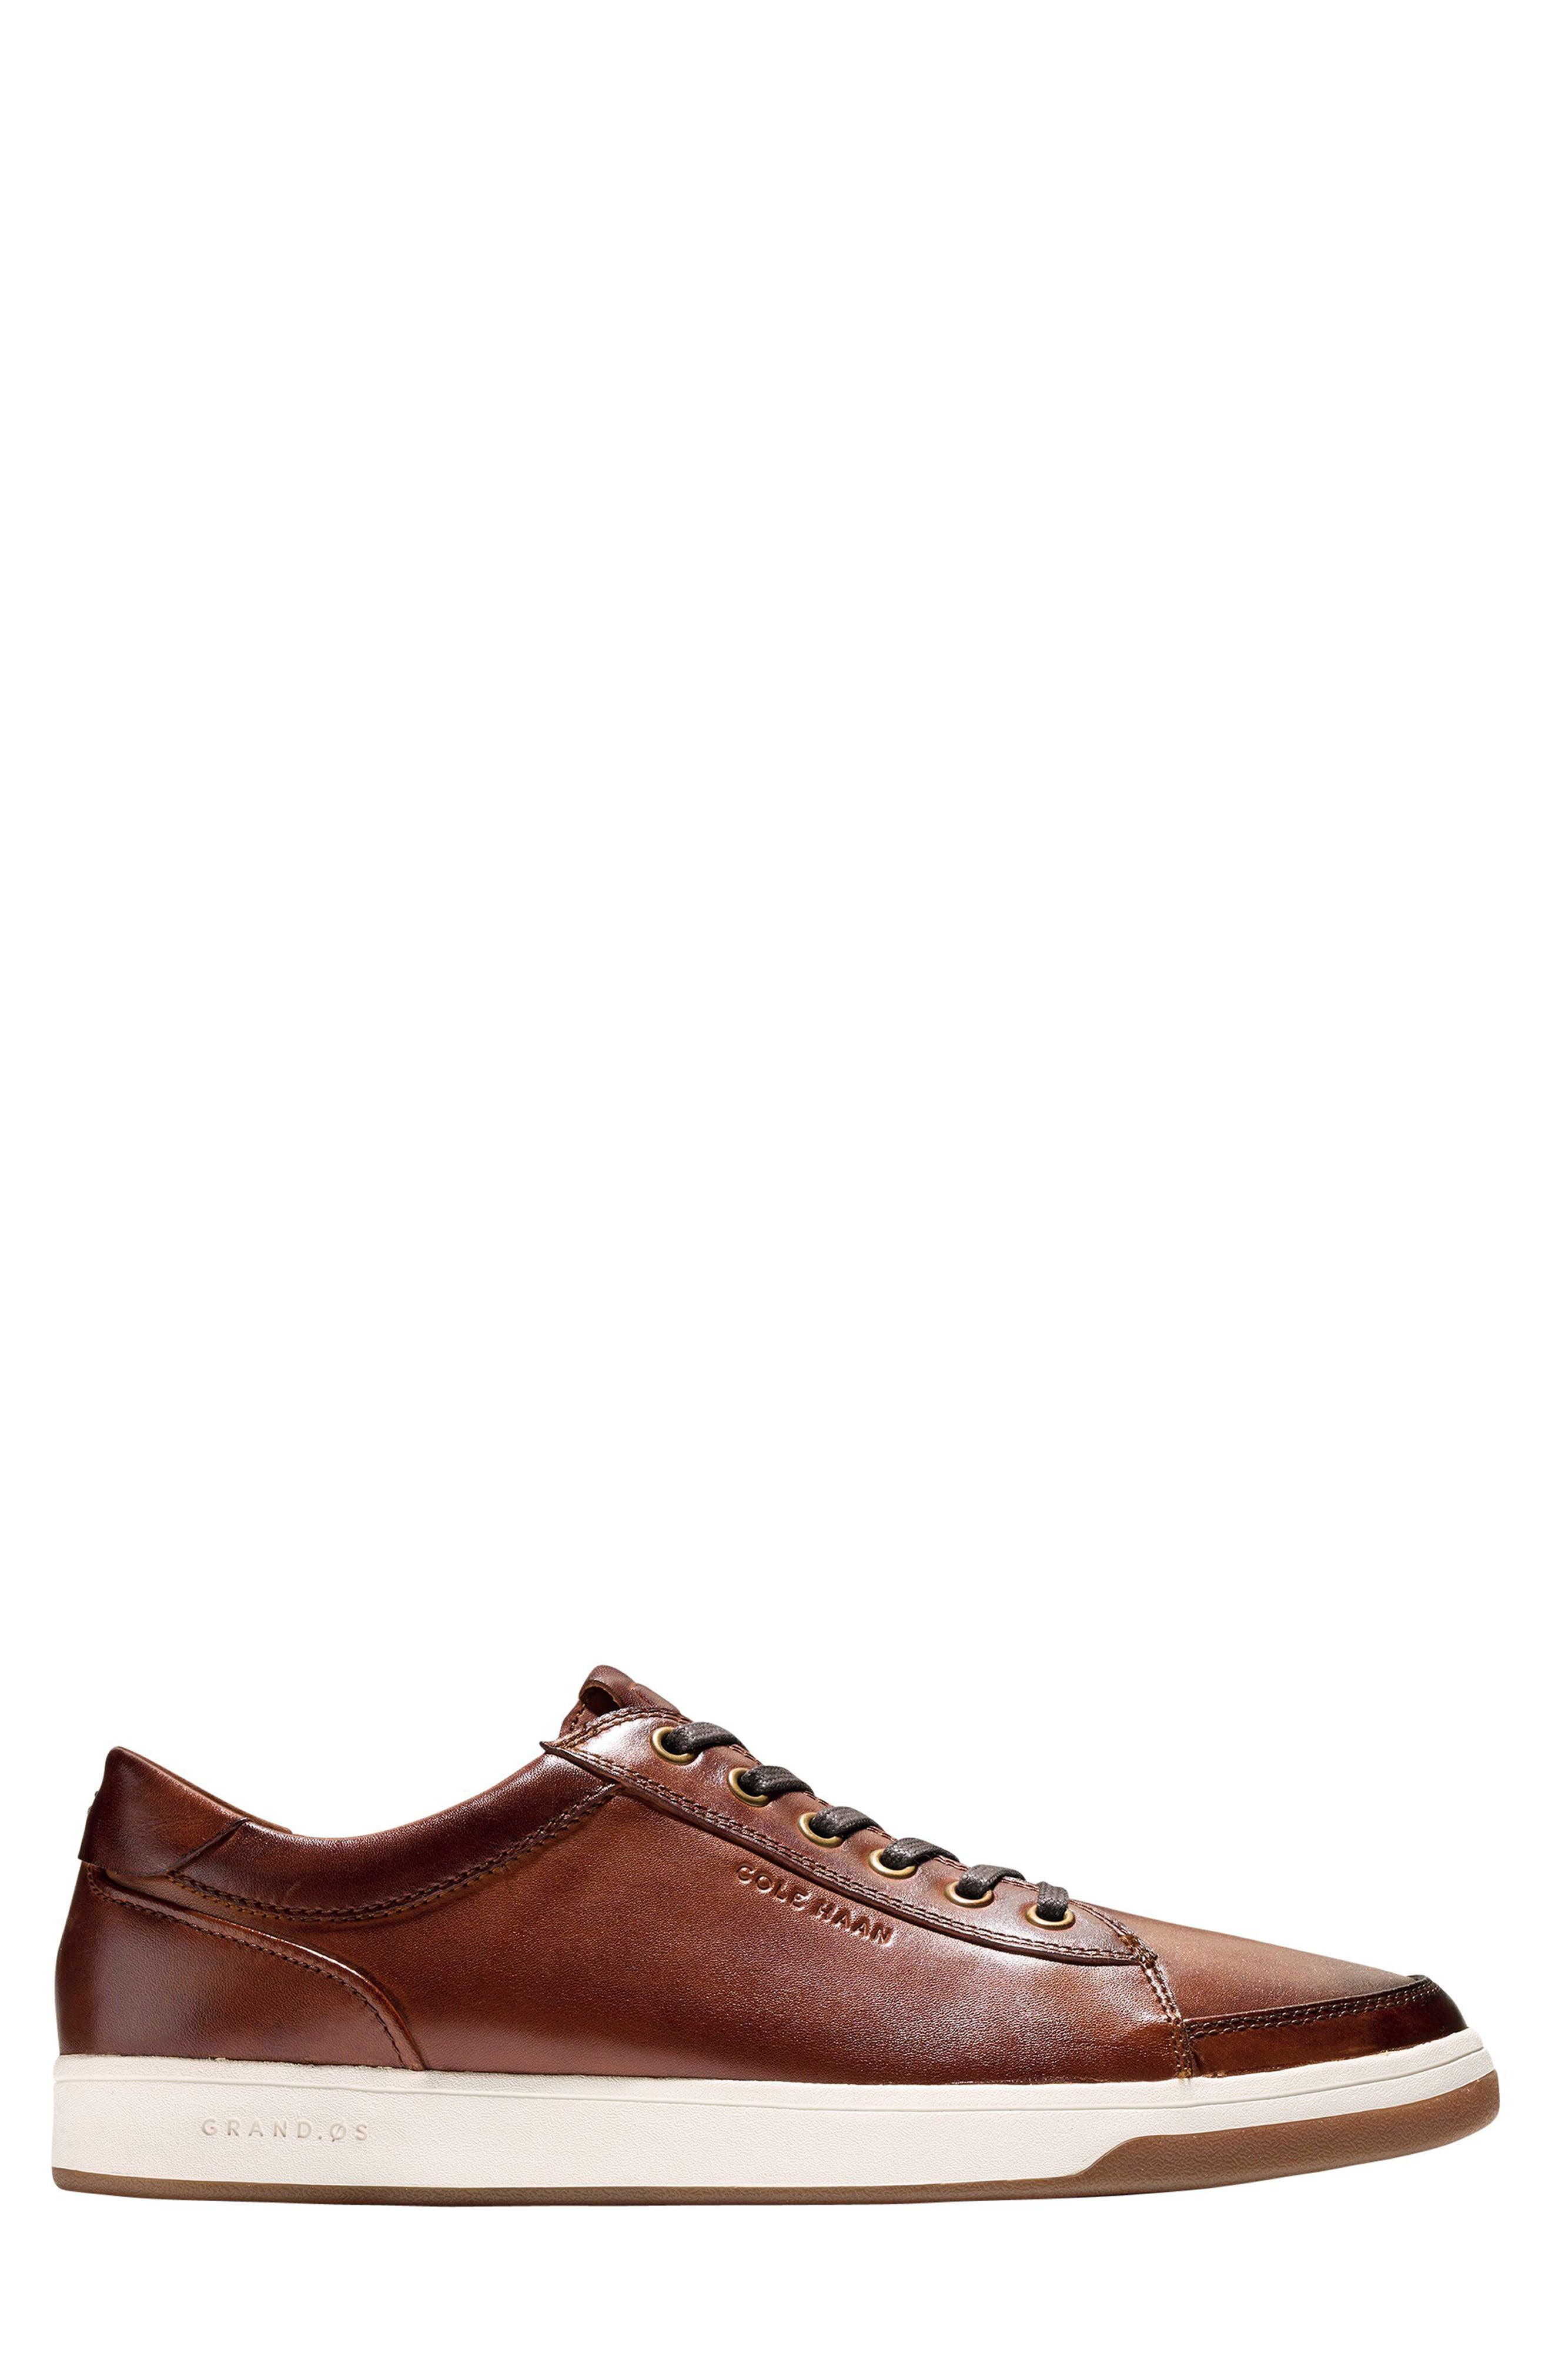 COLE HAAN, GrandPro Spectator Sneaker, Alternate thumbnail 3, color, WOODBURY LEATHER